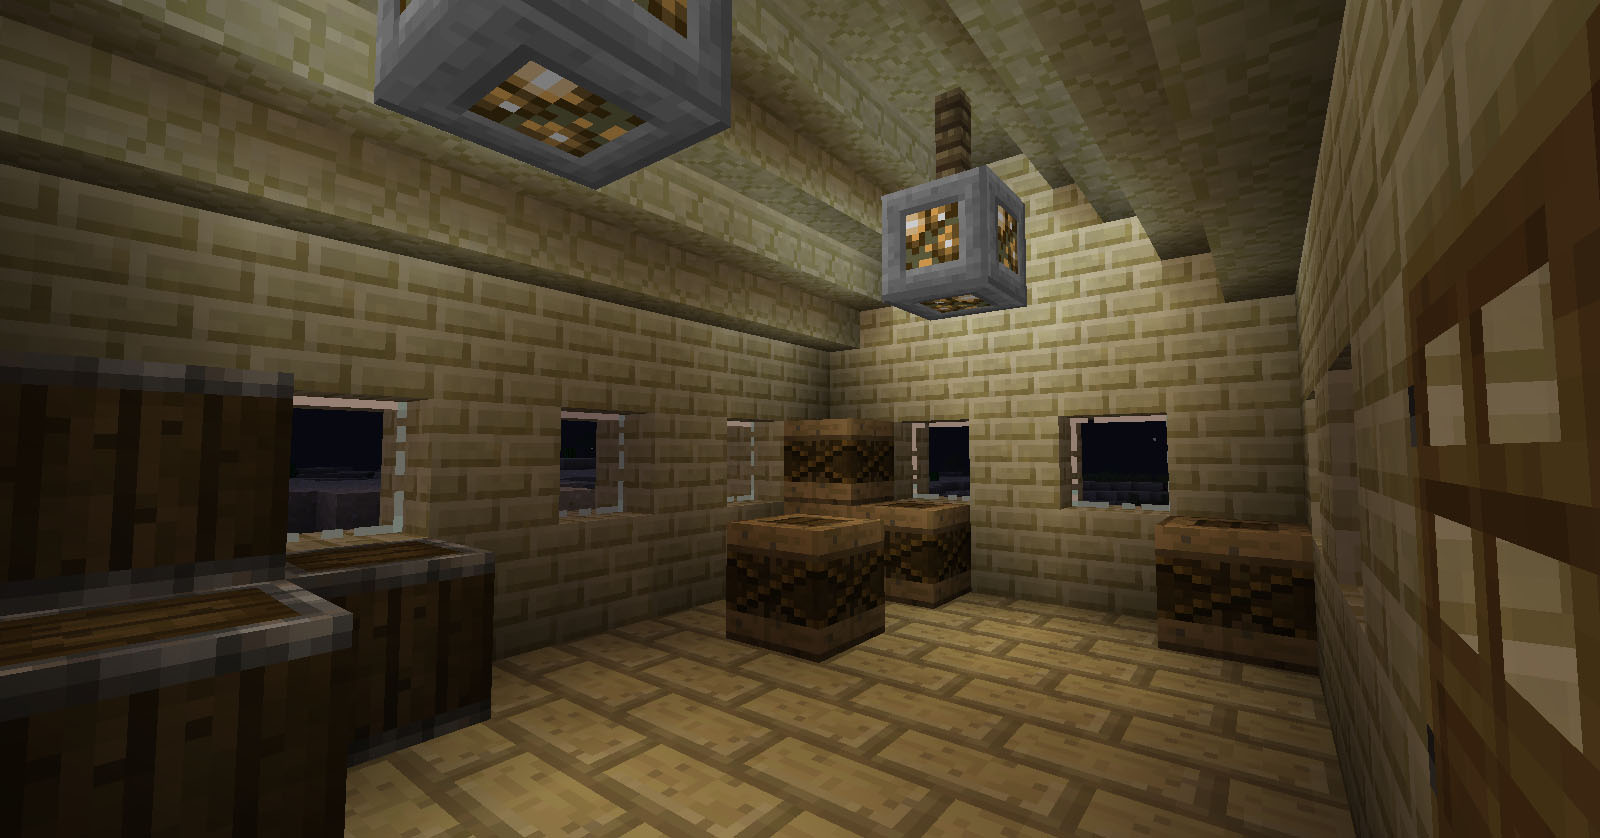 http://minecraft-forum.net/wp-content/uploads/2013/07/e22c7__Extrapolated-Decor-Mod-3.jpg